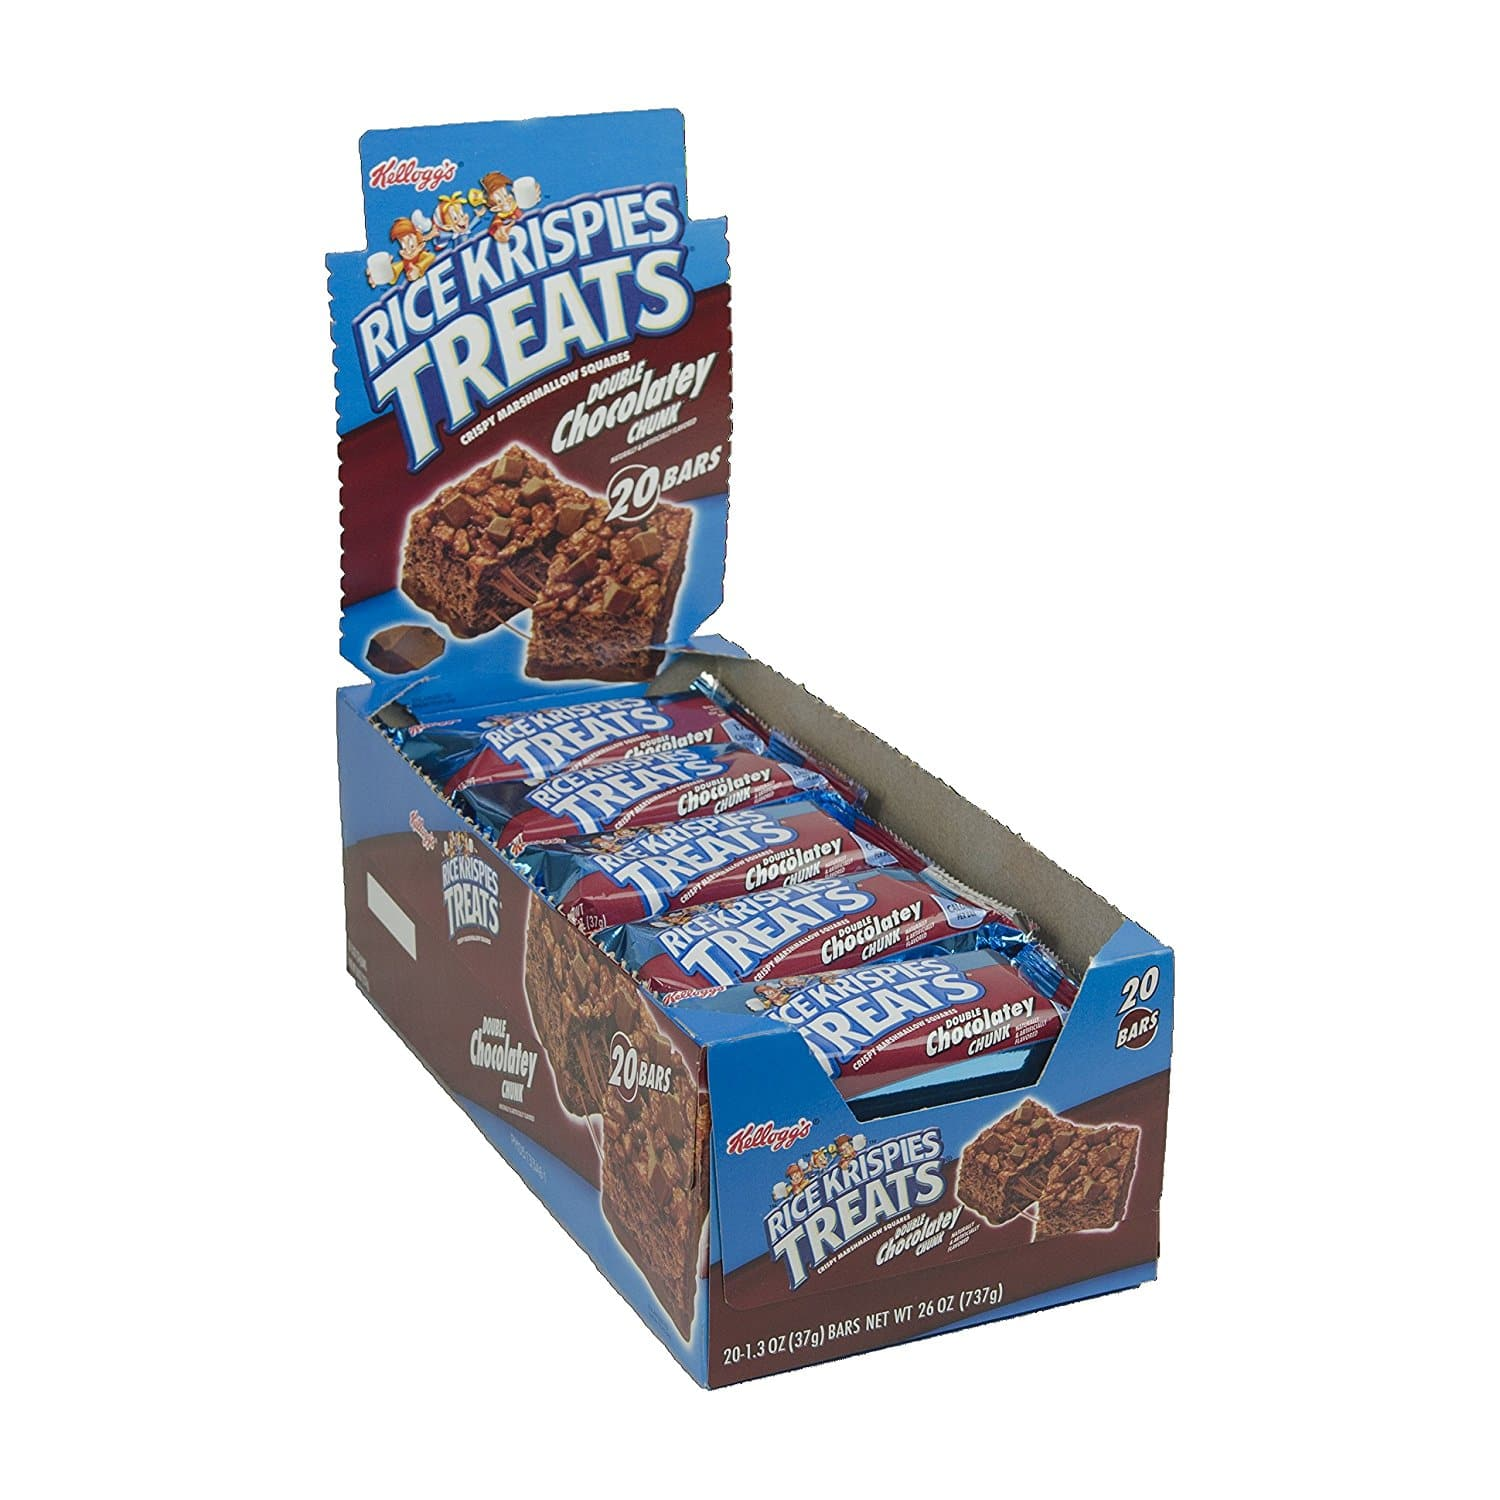 Pack of 40 - Rice Krispies Treats Double Chocolatey Chunk Grab 'n Go Snacks, 1.3-Ounce Packages $5.47 FS with Subscribe and save